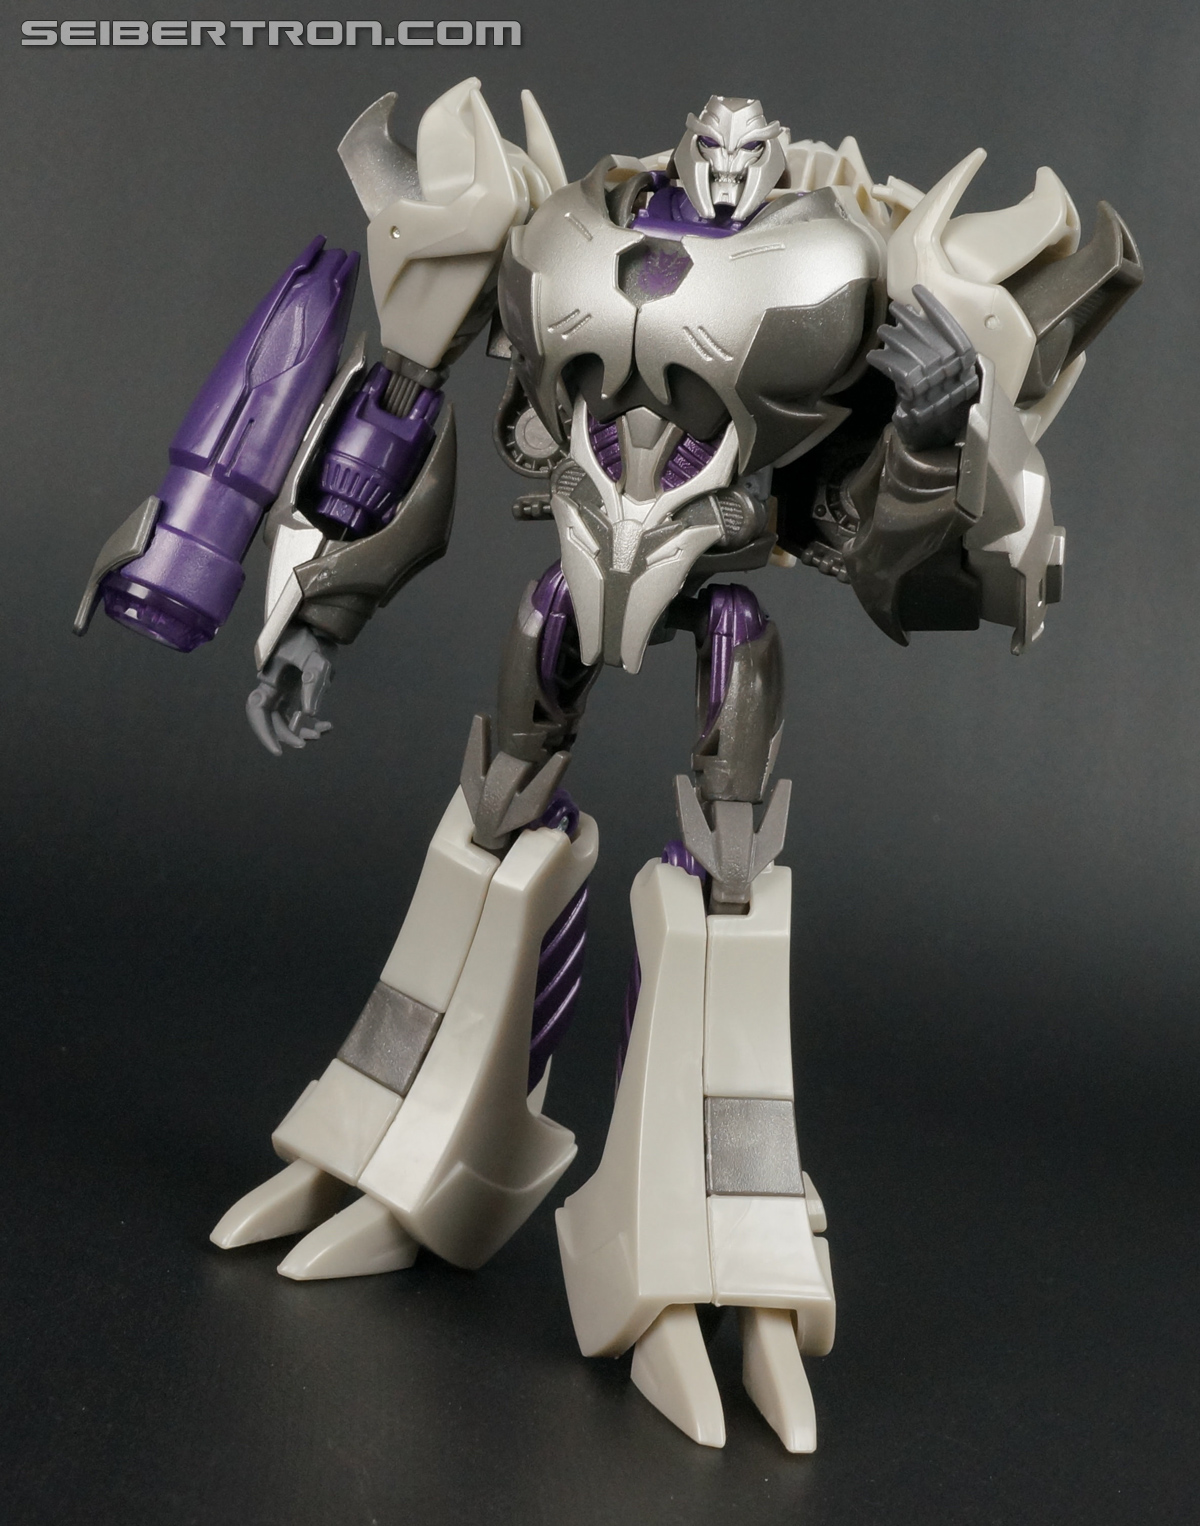 Transformers First Edition Megatron (Image #100 of 165)